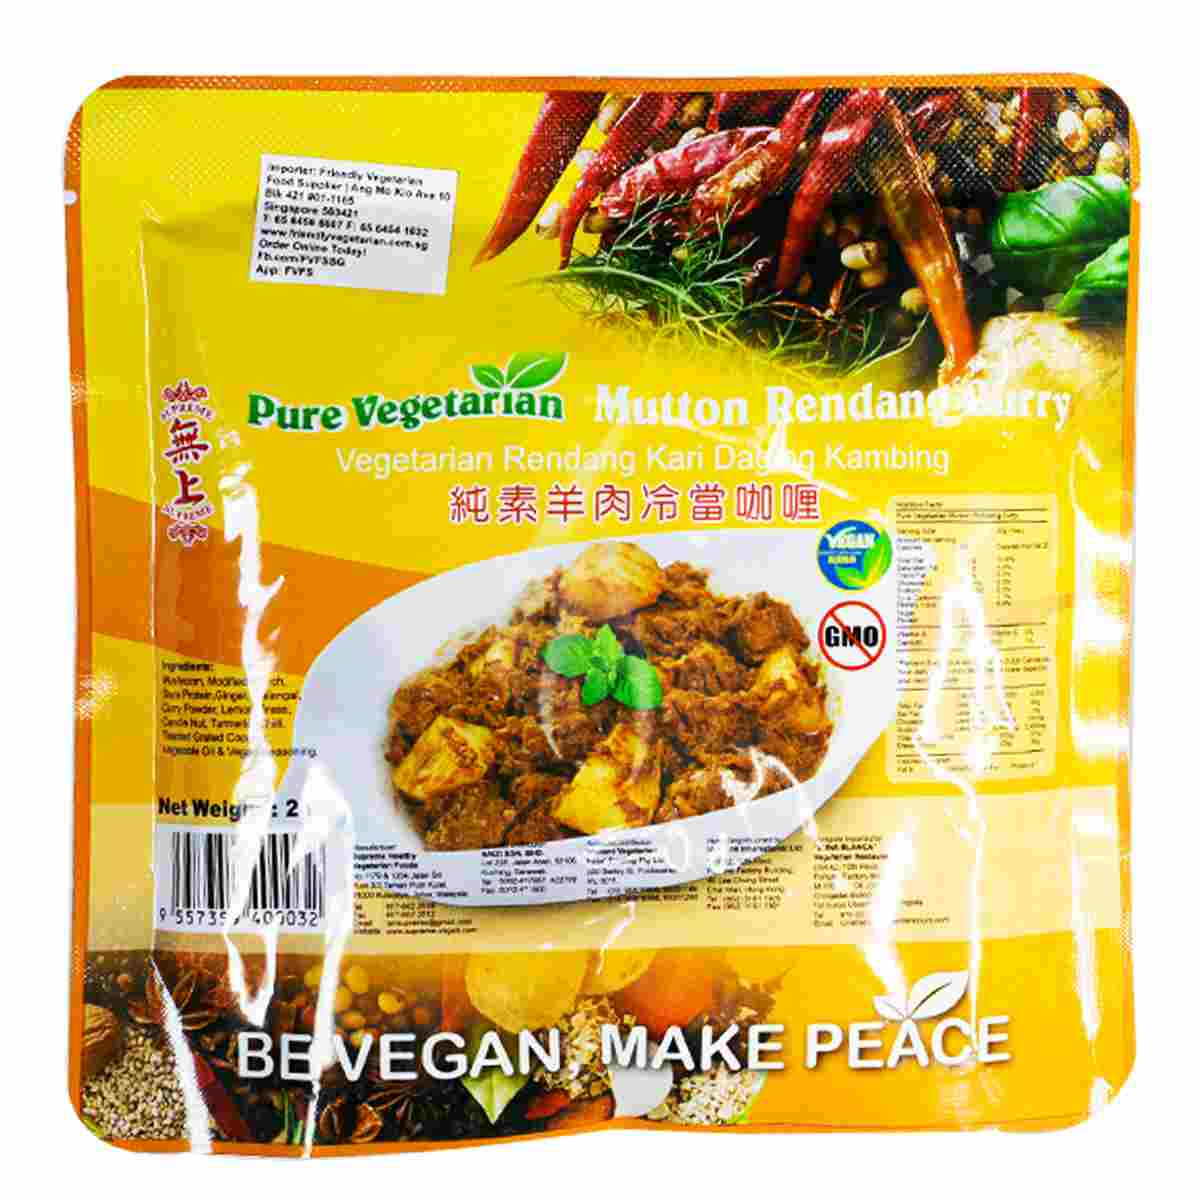 Image Vegetarian Mutton Rendang Curry 无上-素羊肉當冷咖哩 250 grams